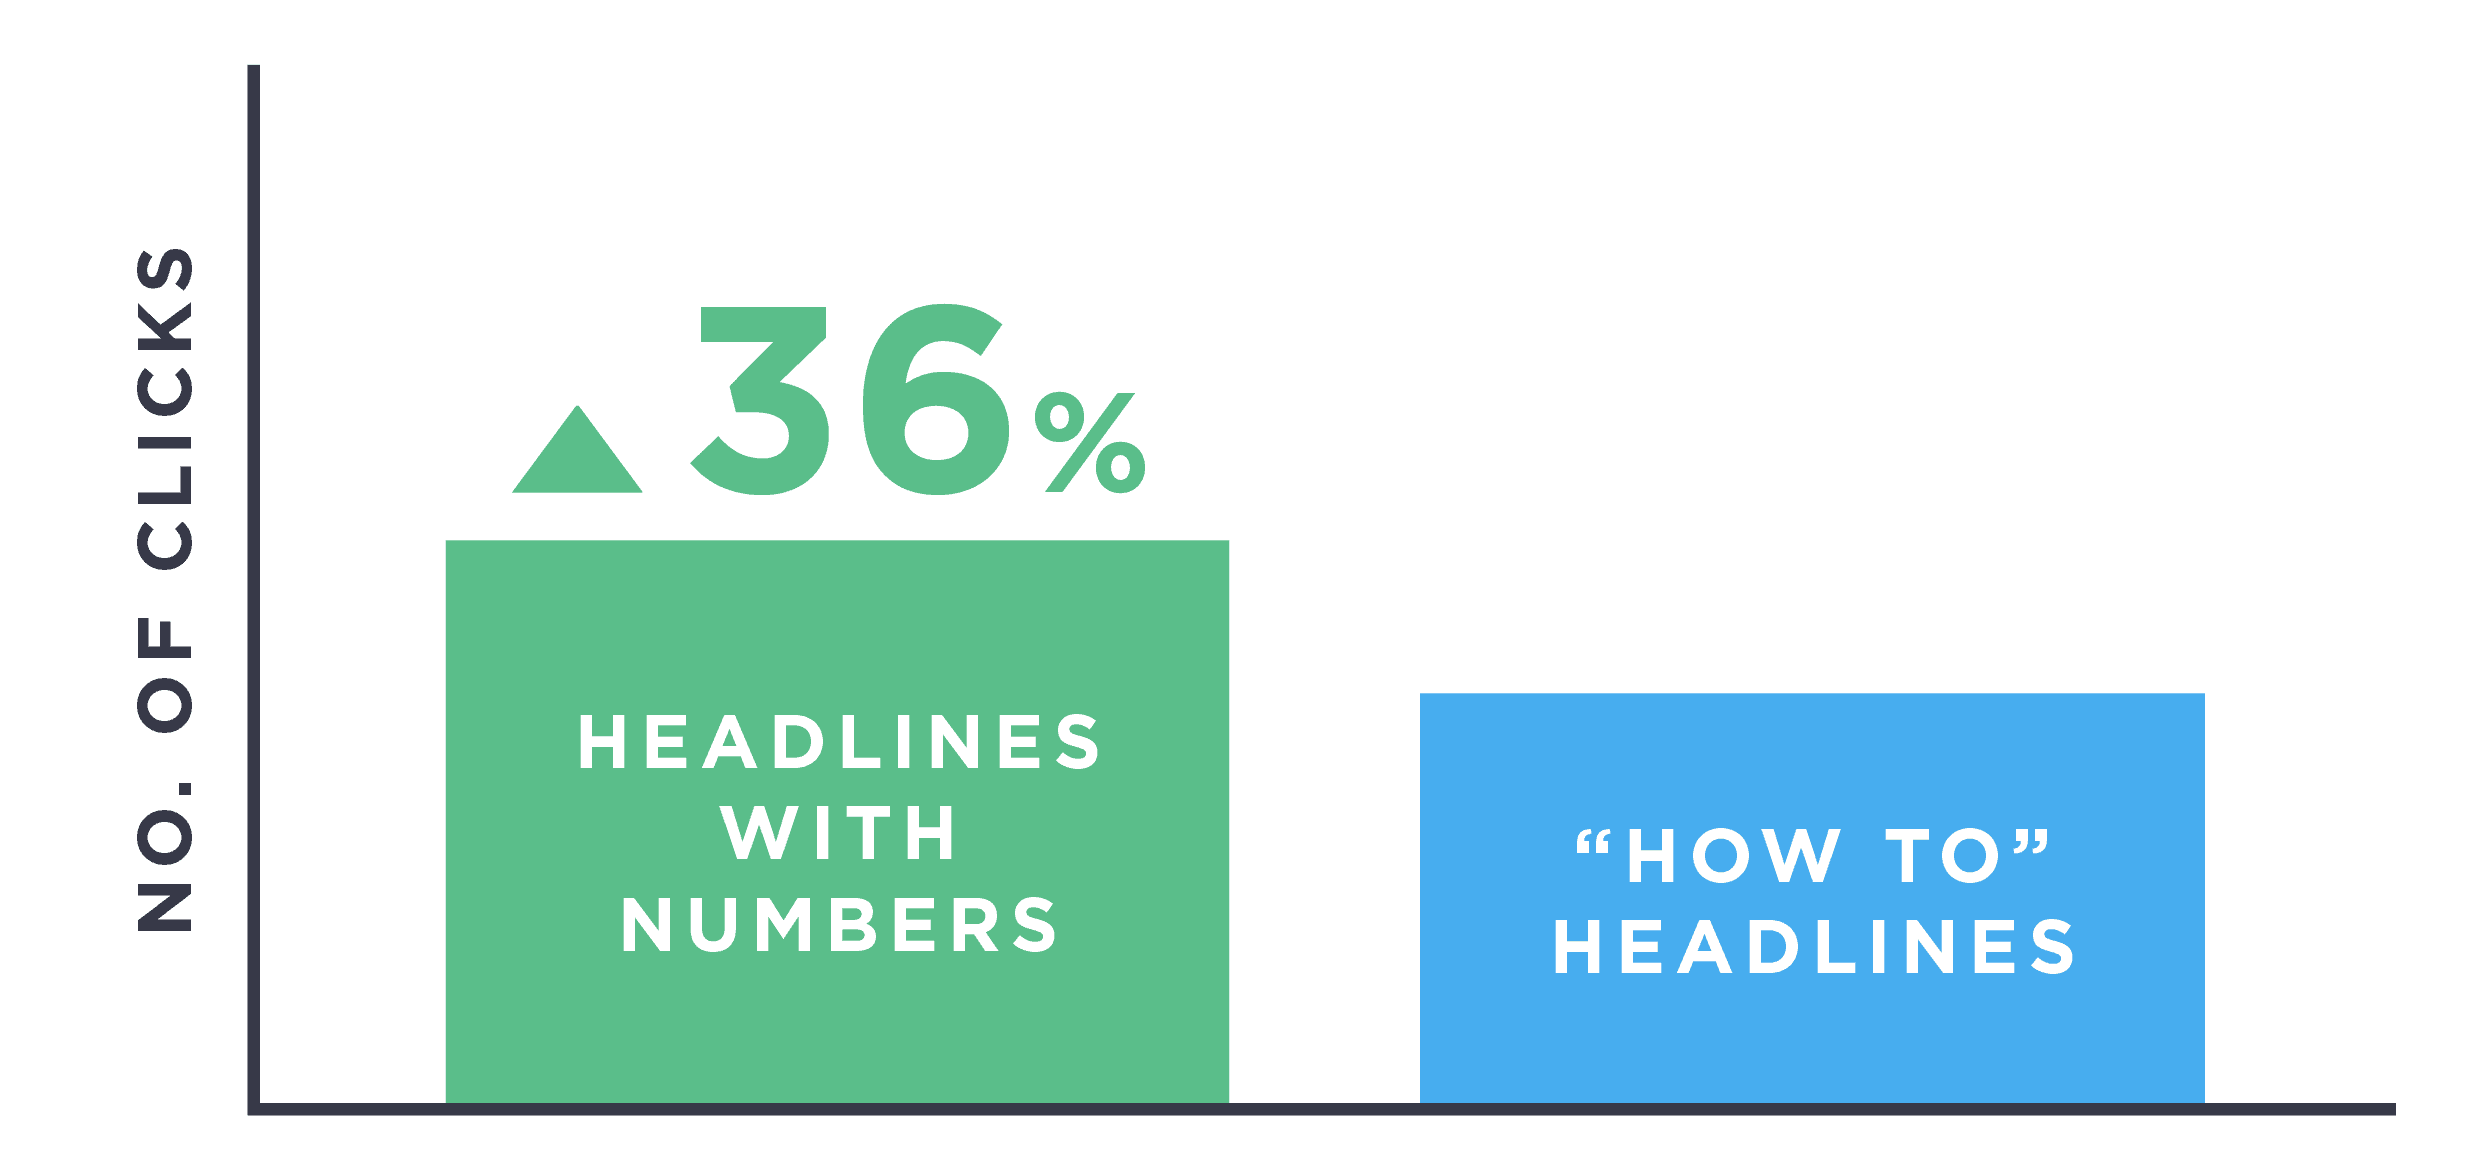 Headlines with numbers get more clicks